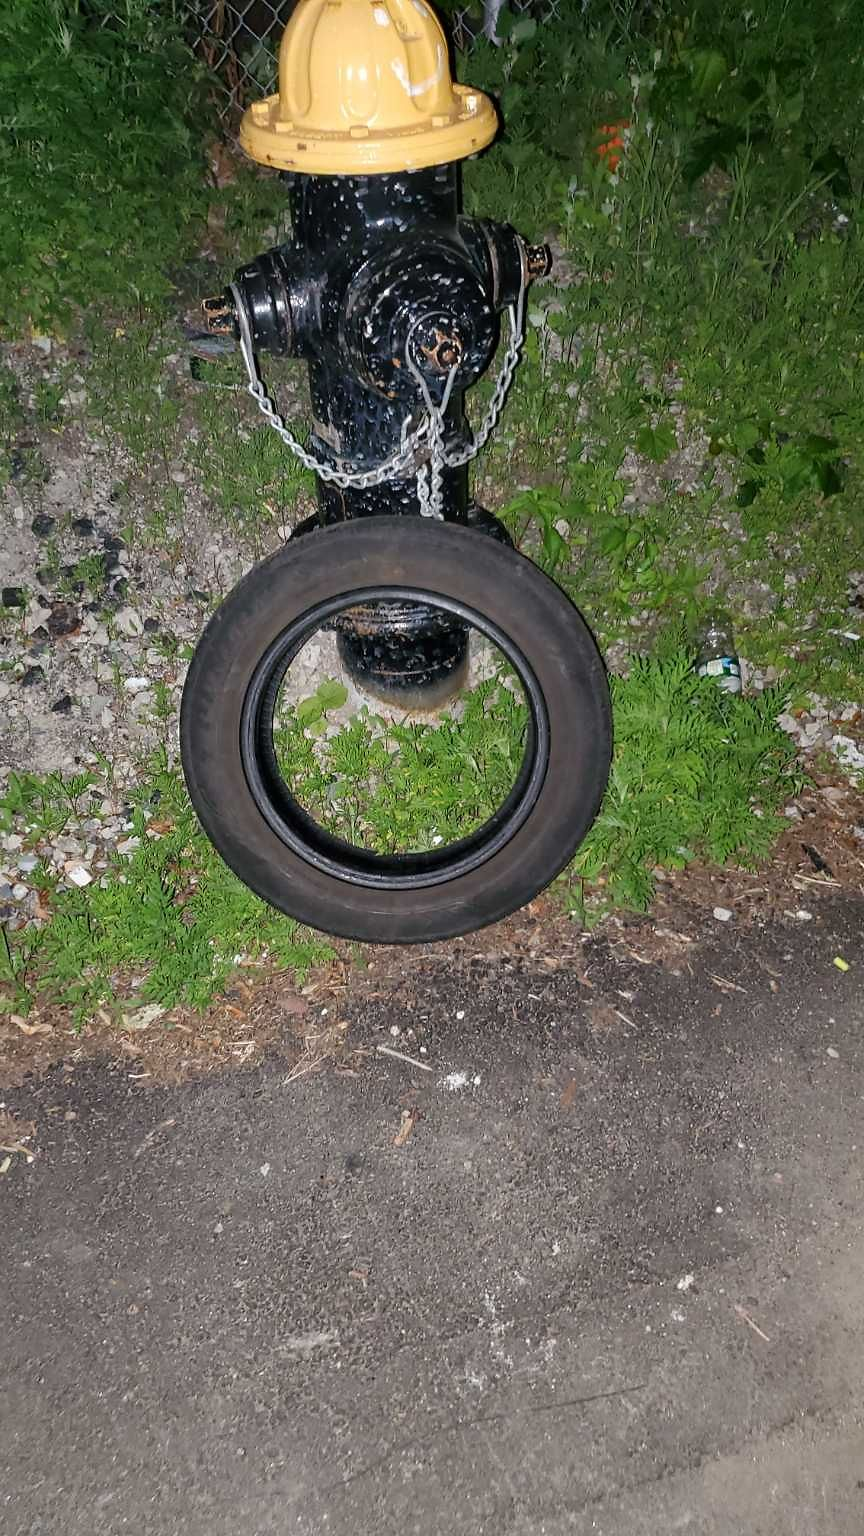 Trash tire across from 17 Balina against hydrant